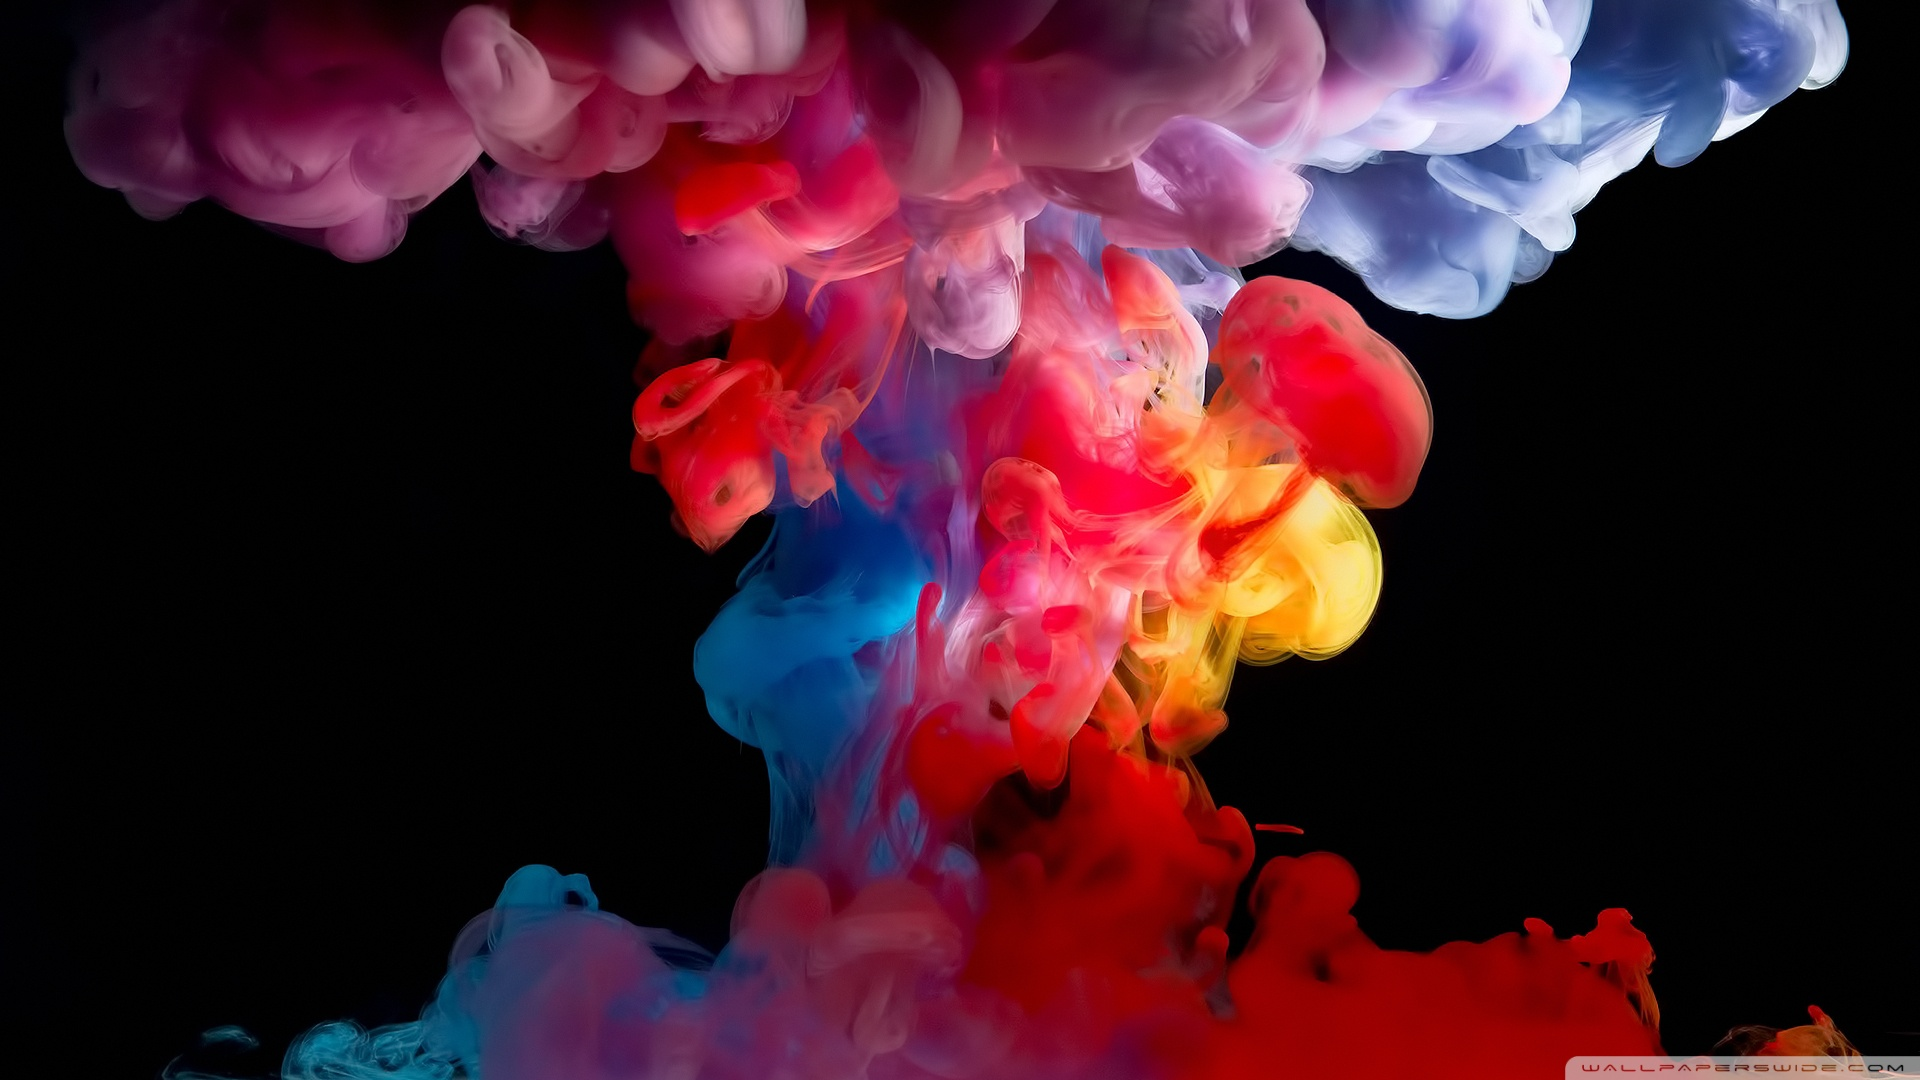 colorful_smoke_4-wallpaper-1920x1080